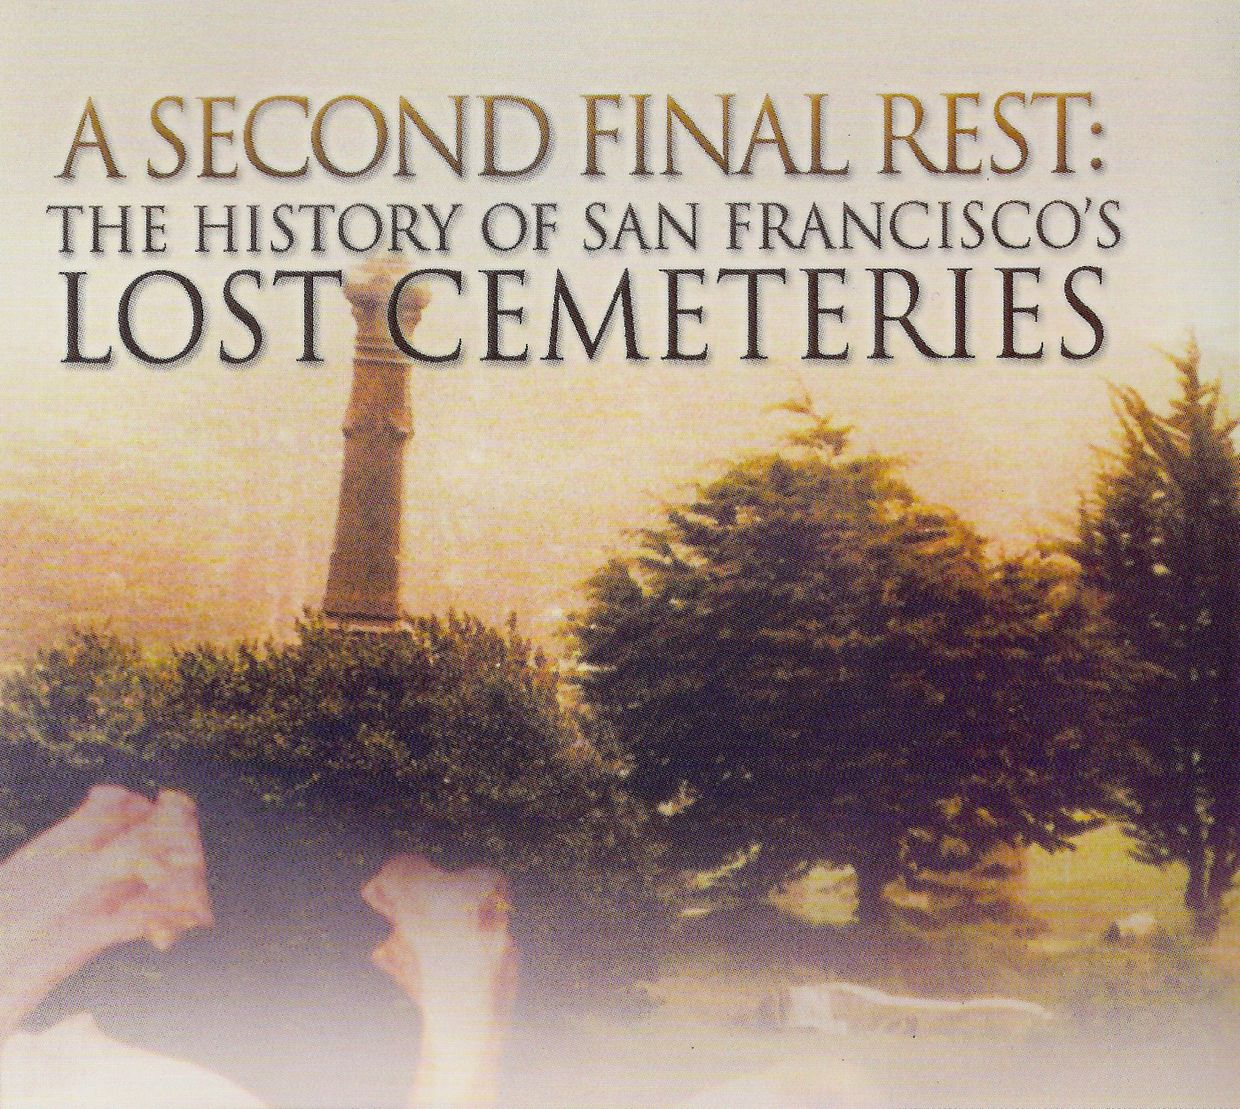 A Second Final Rest: The History of San Francisco's Lost Cemeteries